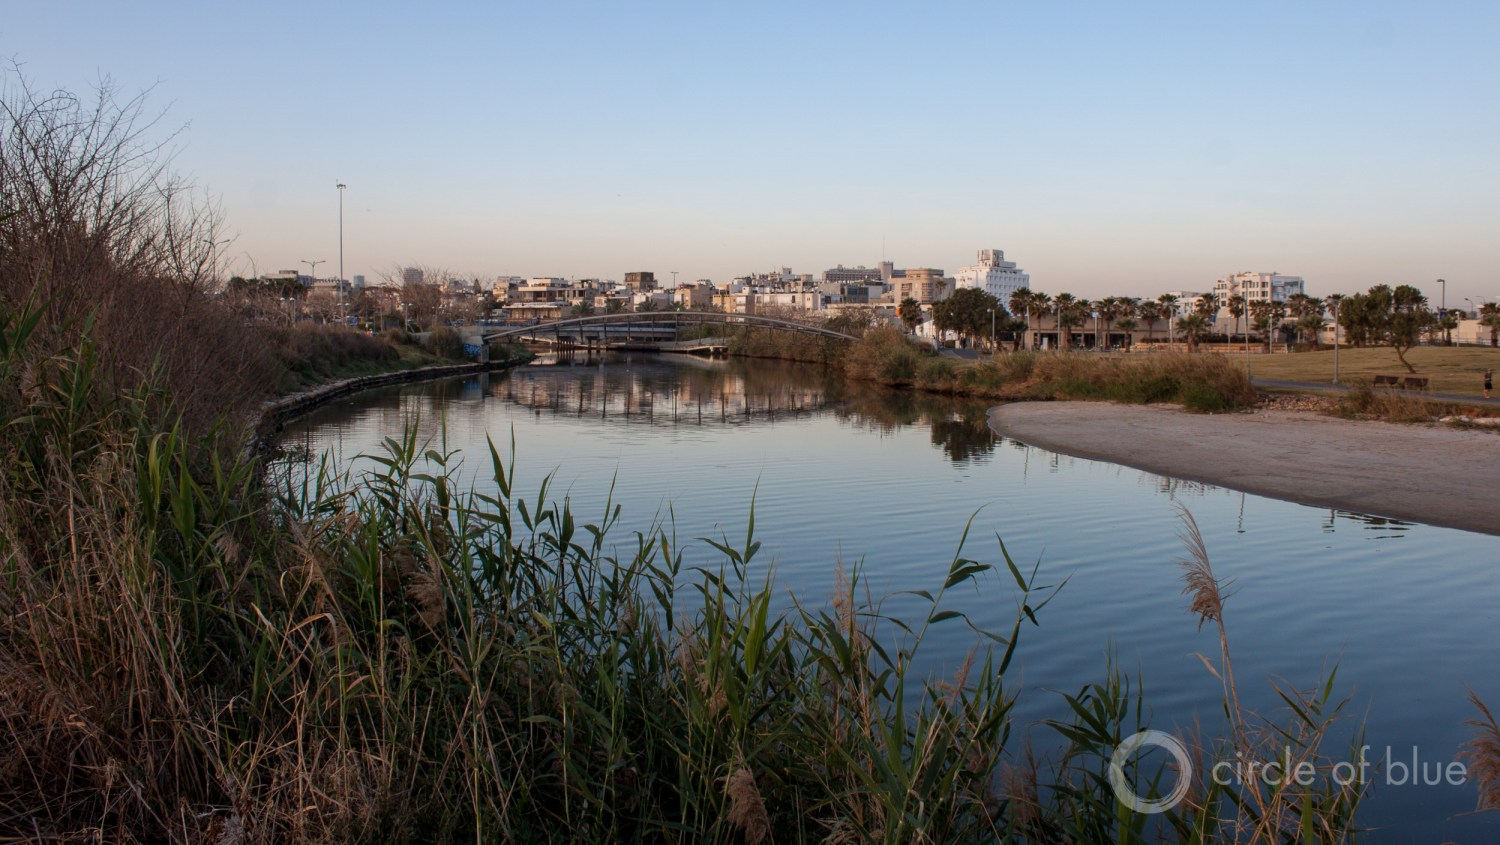 The Yarkon River, a restoration focus in recent years, flows through Tel Aviv. Photo © Brett Walton / Circle of Blue